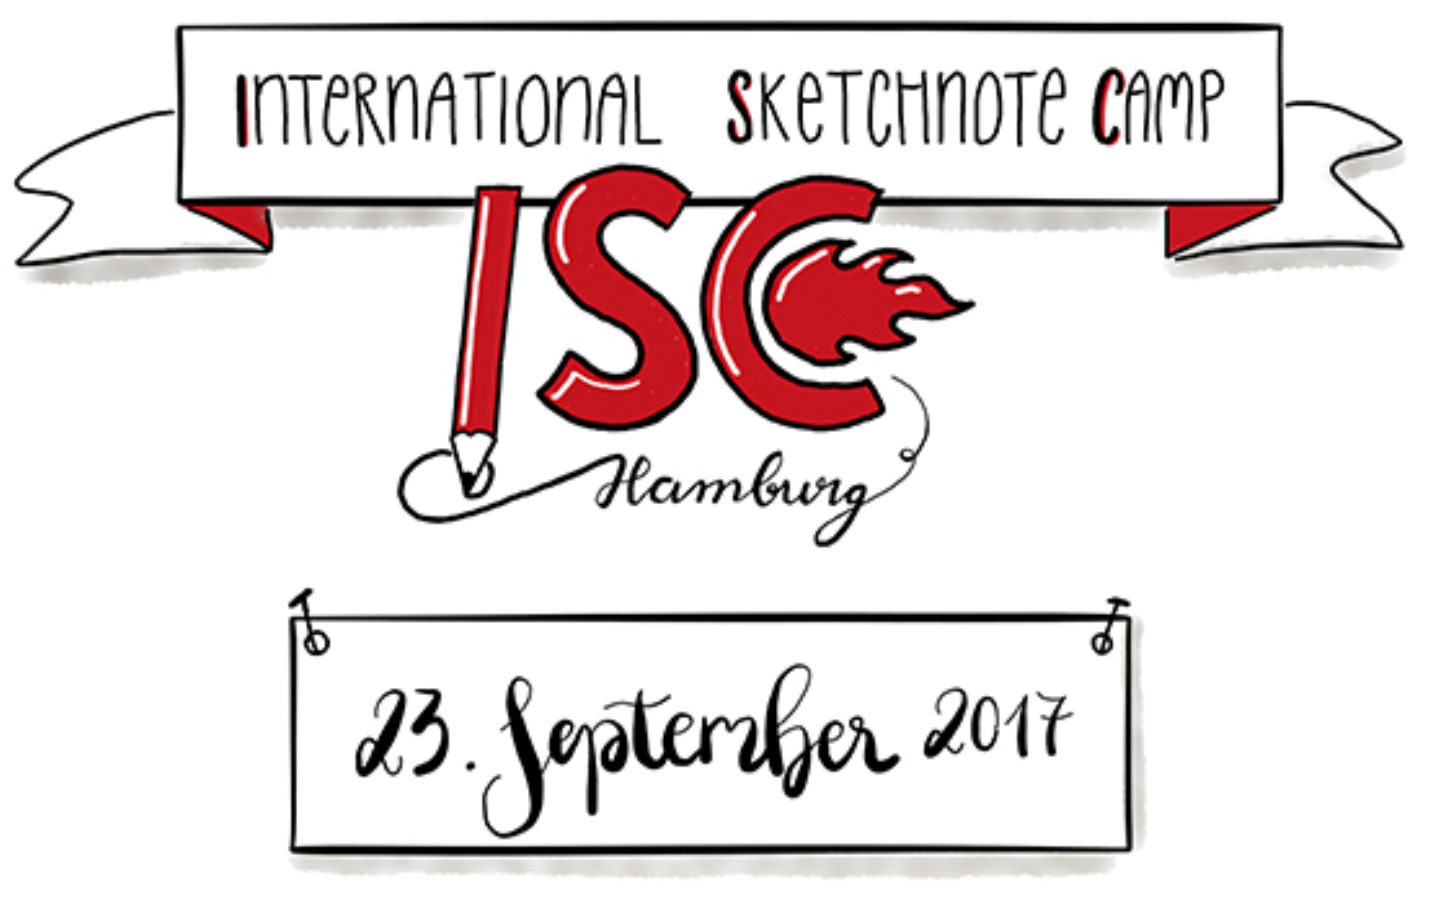 1st International Sketchnote Camp